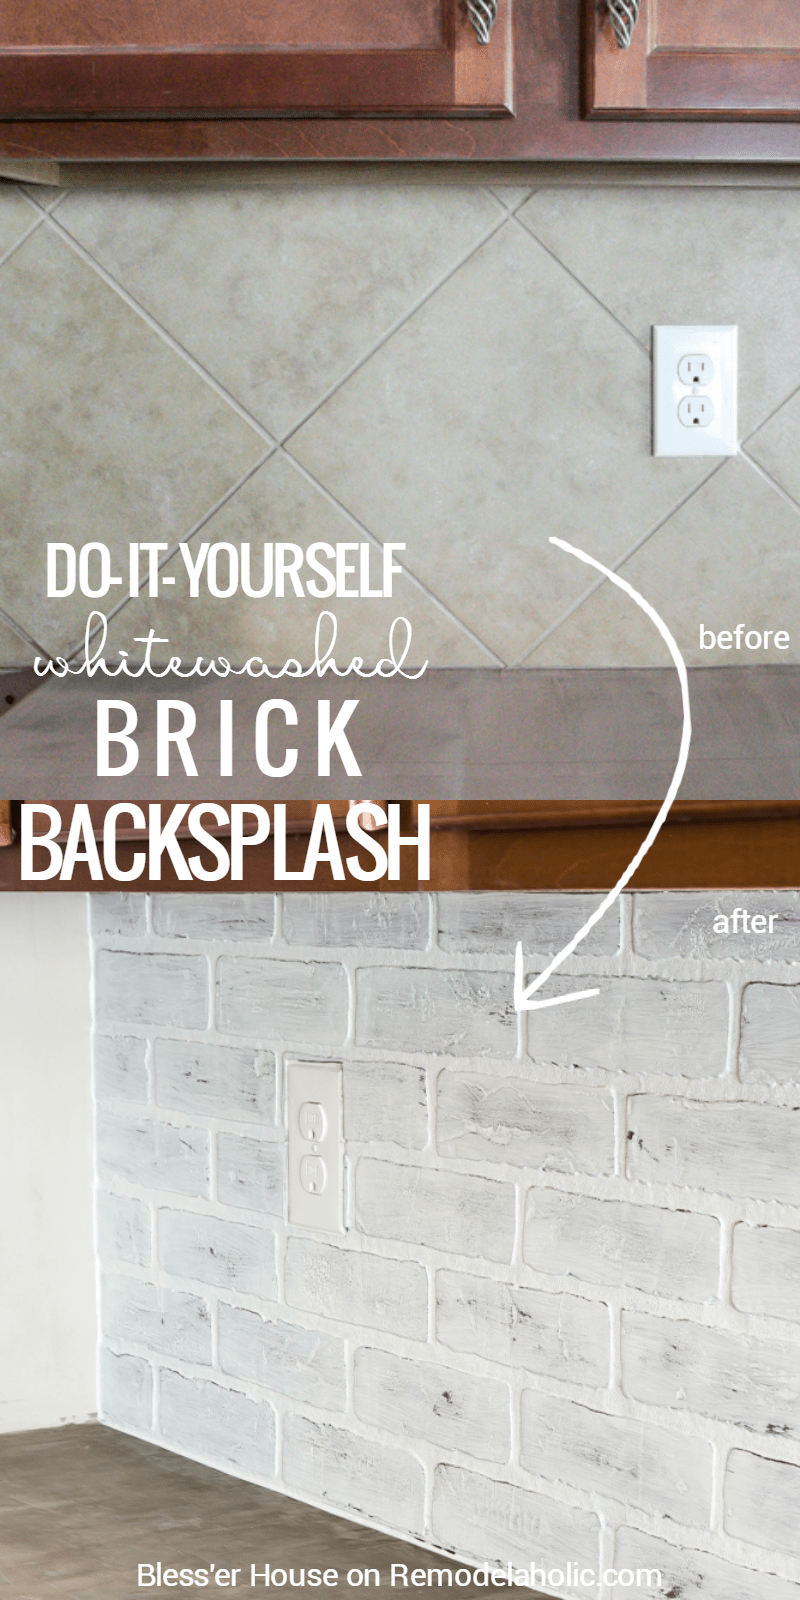 enchanting faux brick backsplash kitchen | Remodelaholic | DIY Whitewashed Faux Brick Backsplash